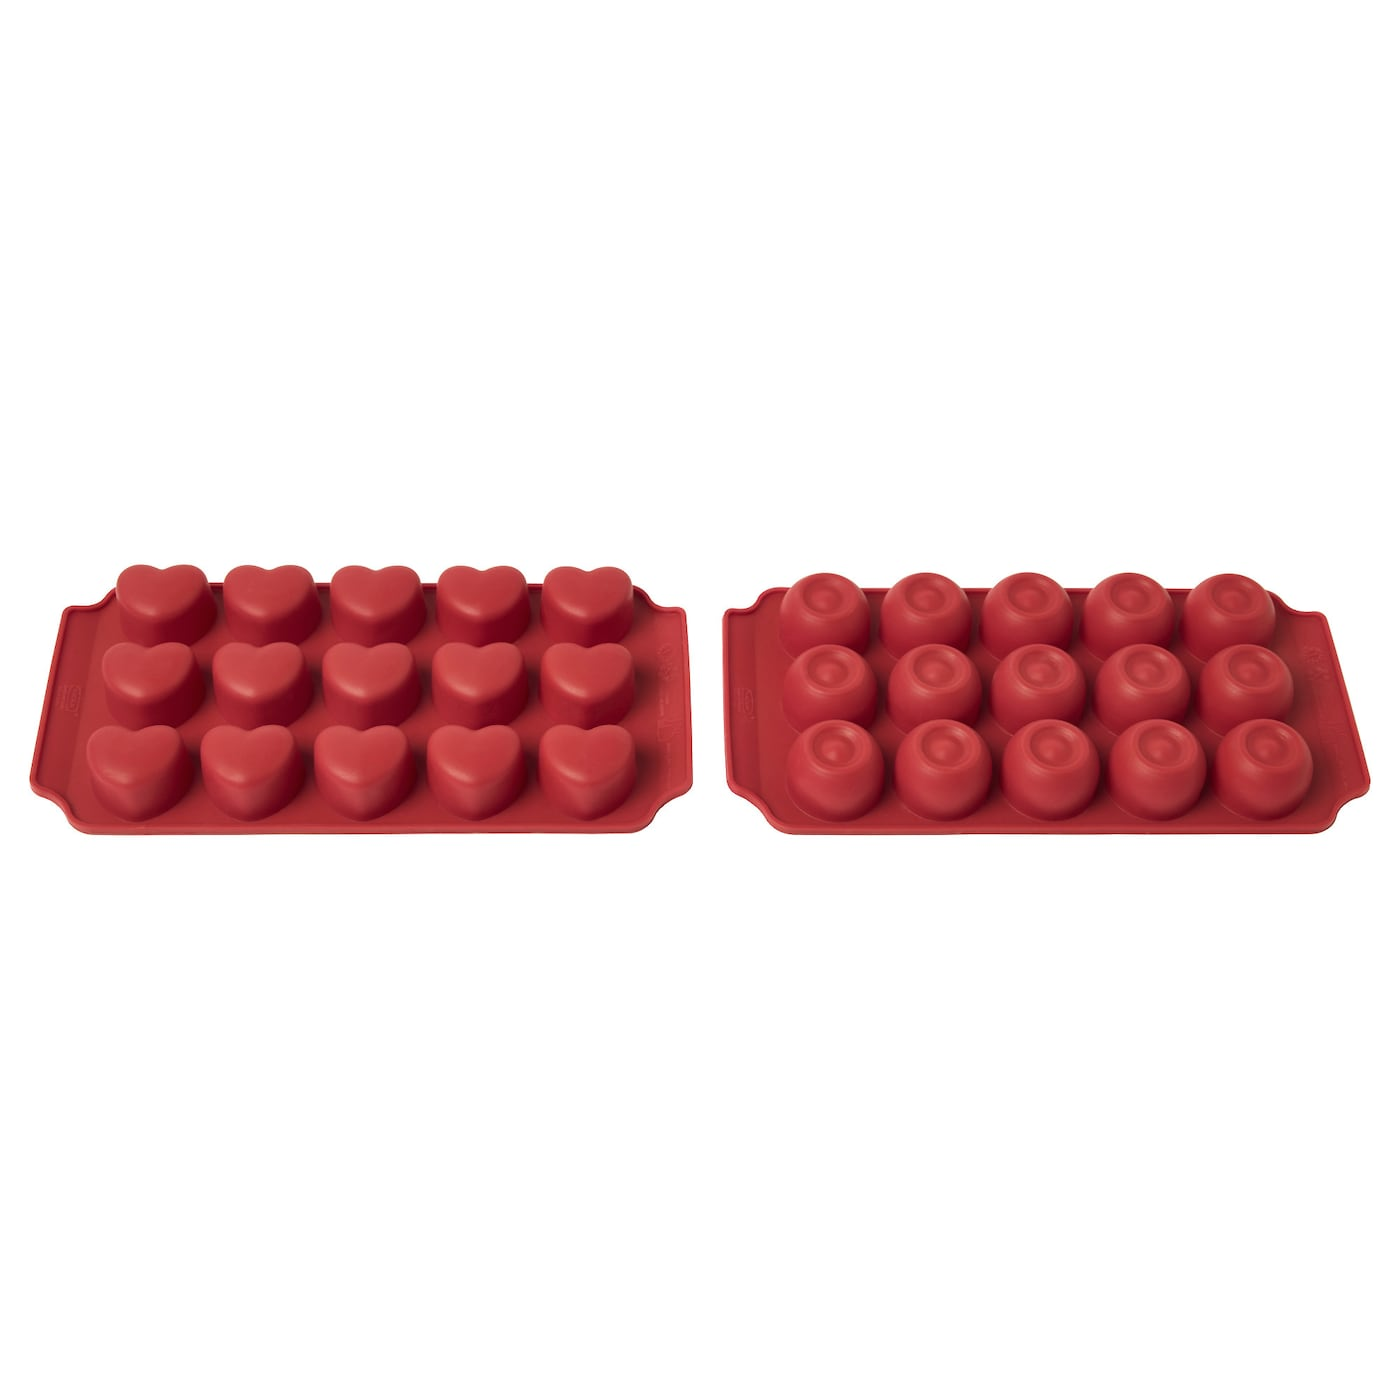 IKEA BAKGLAD chocolate mould